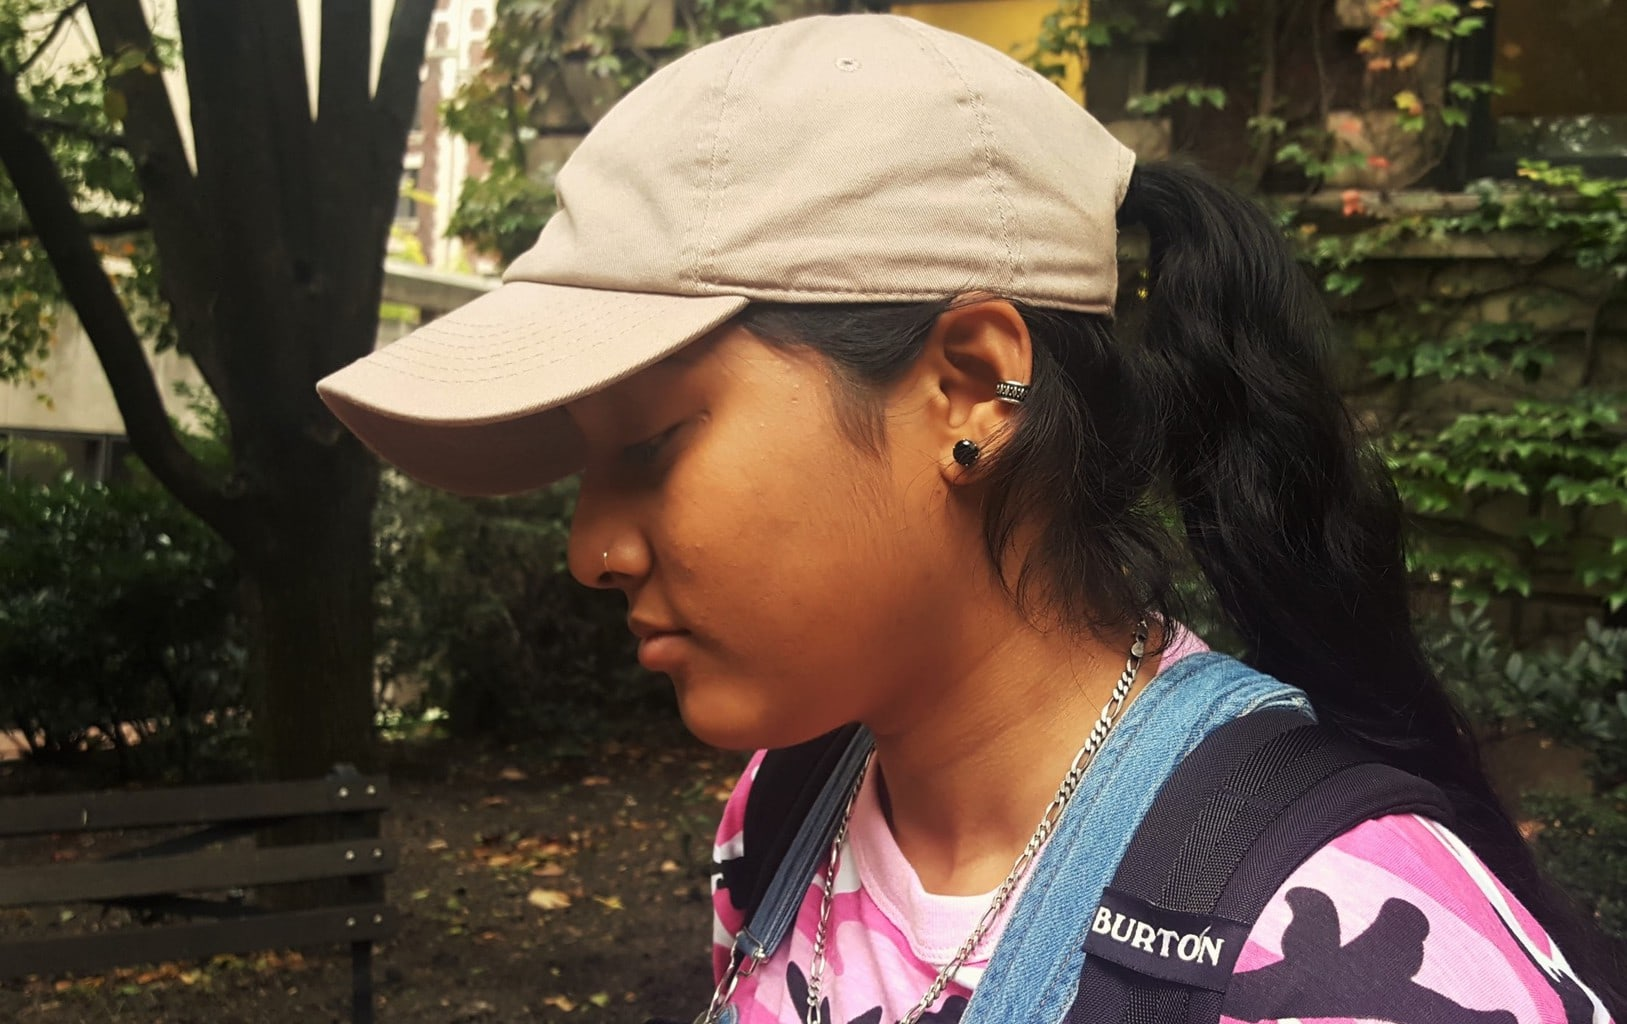 Alema wears a tan baseball cap with her black stud earrings and cartilage piercing.